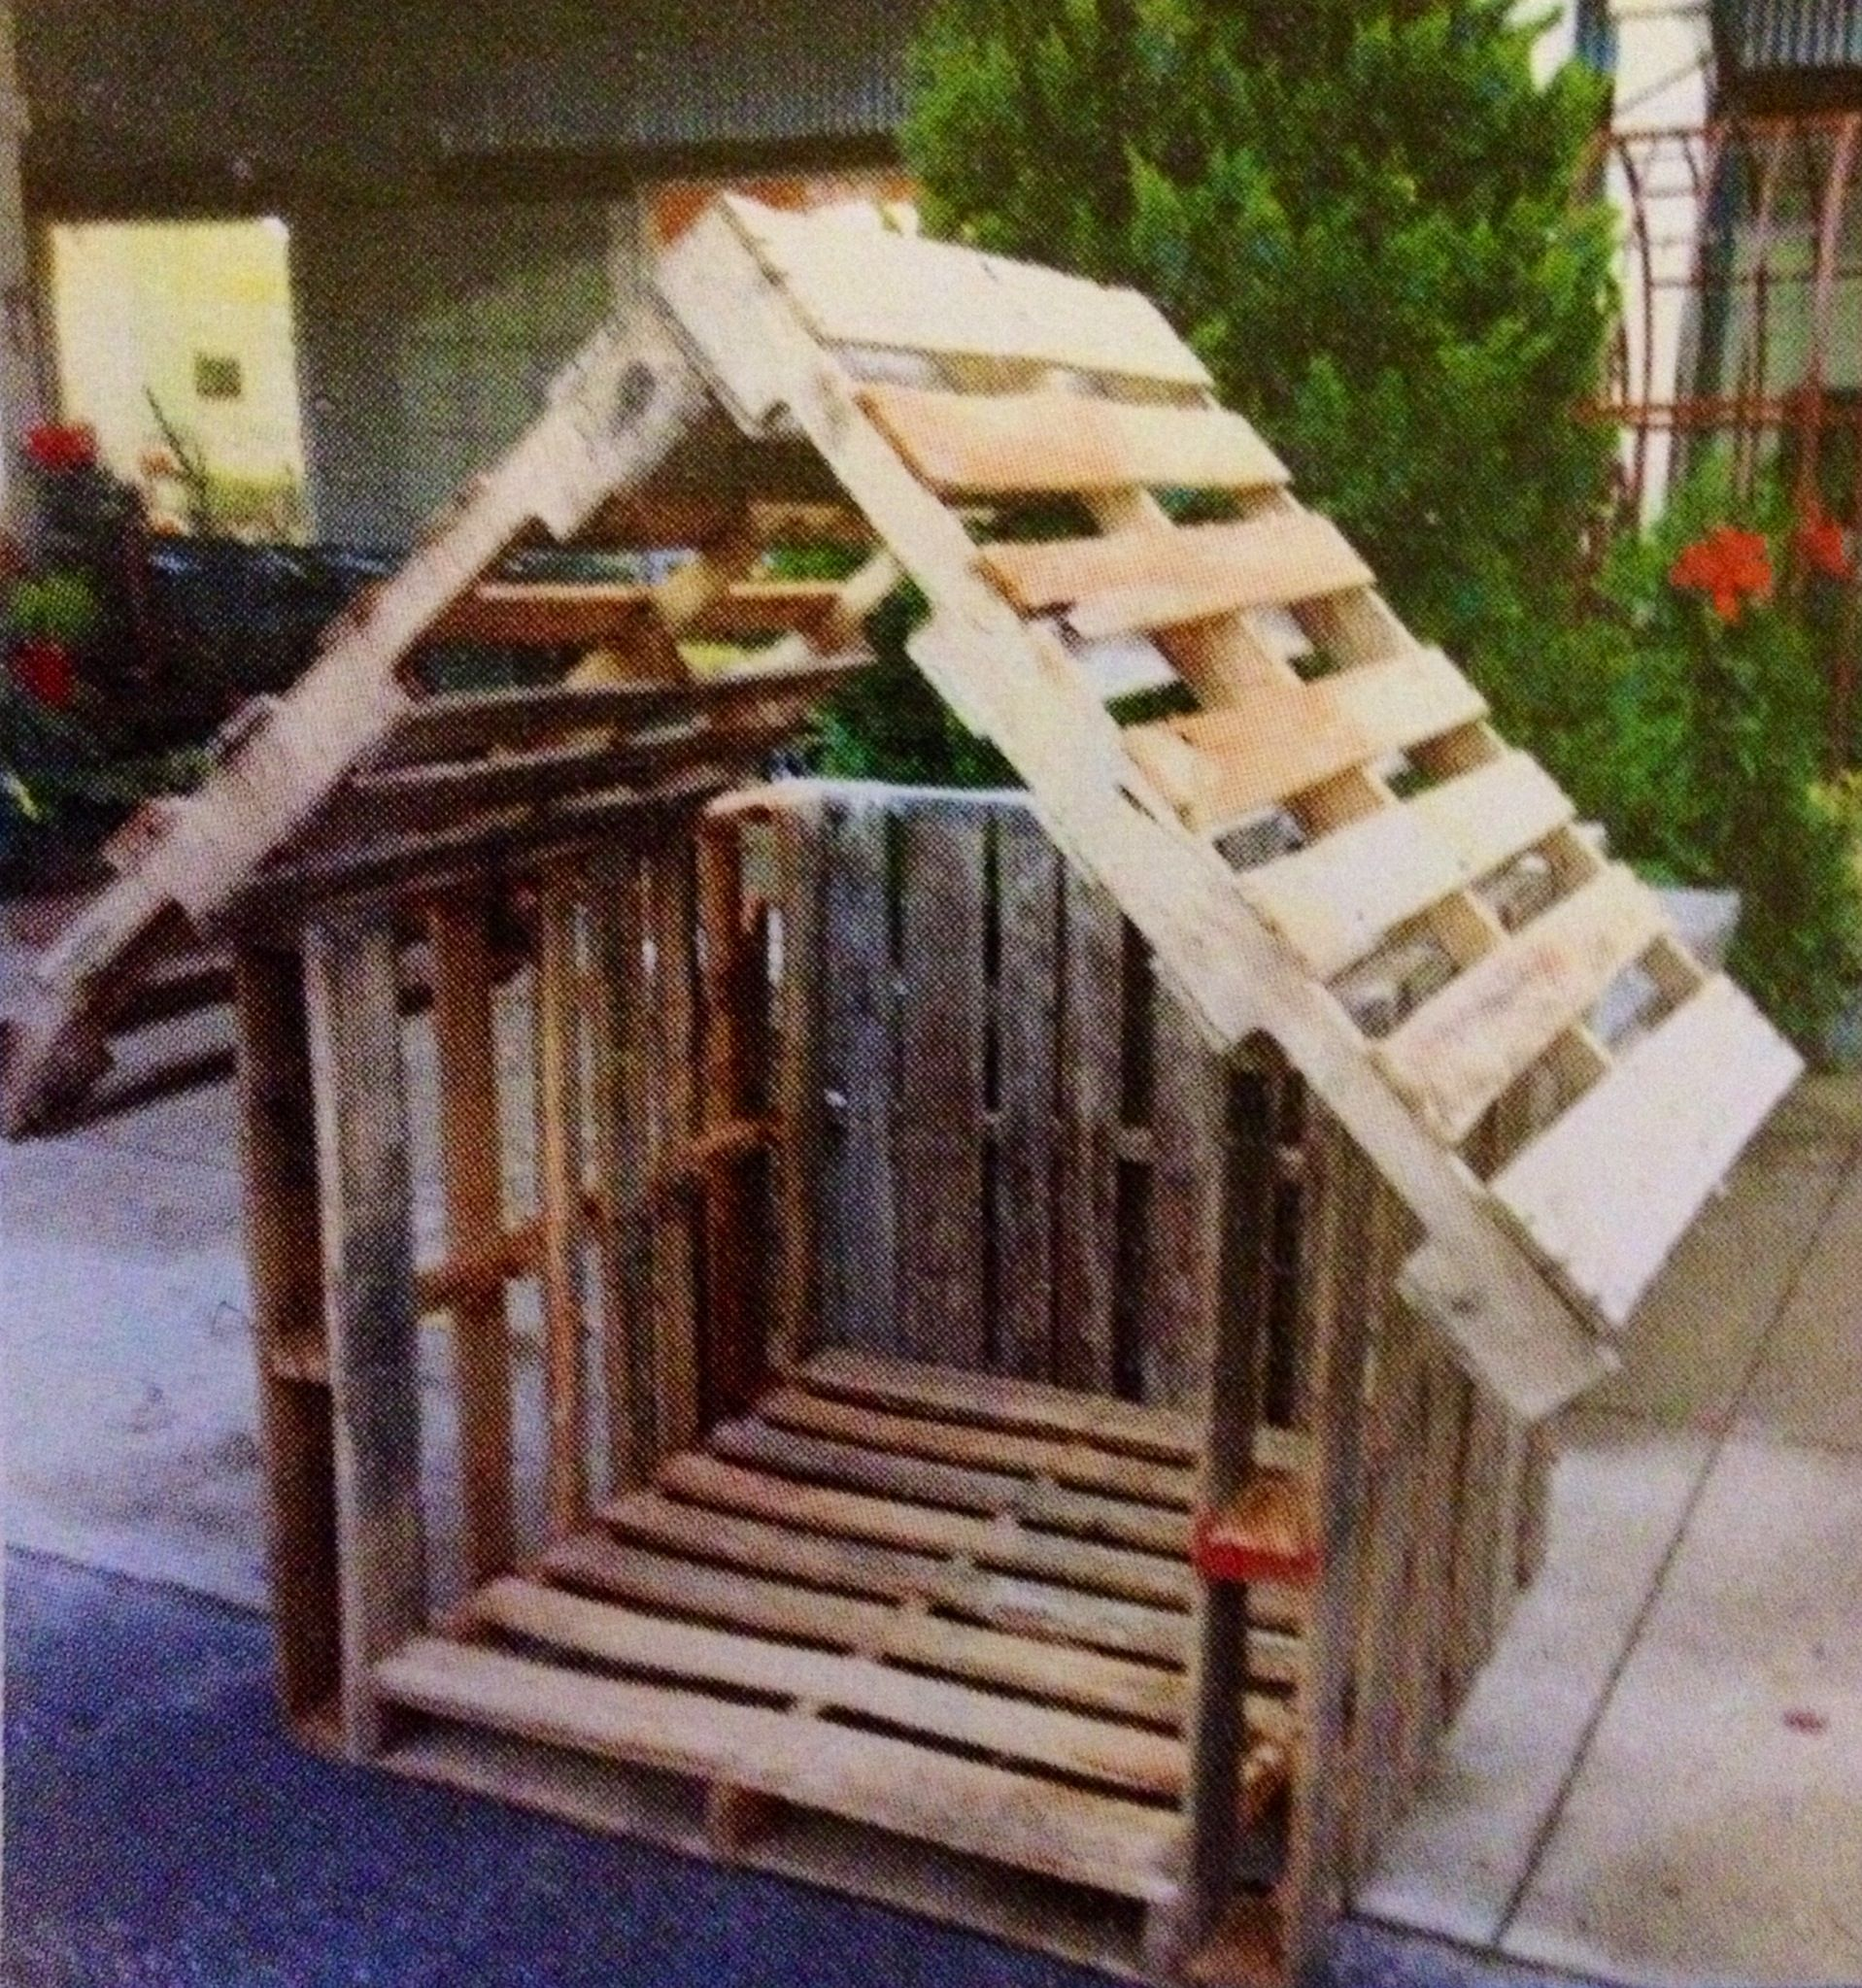 House Made From Pallets Manger Created Using Pallets Pallet Piccaso Pinterest